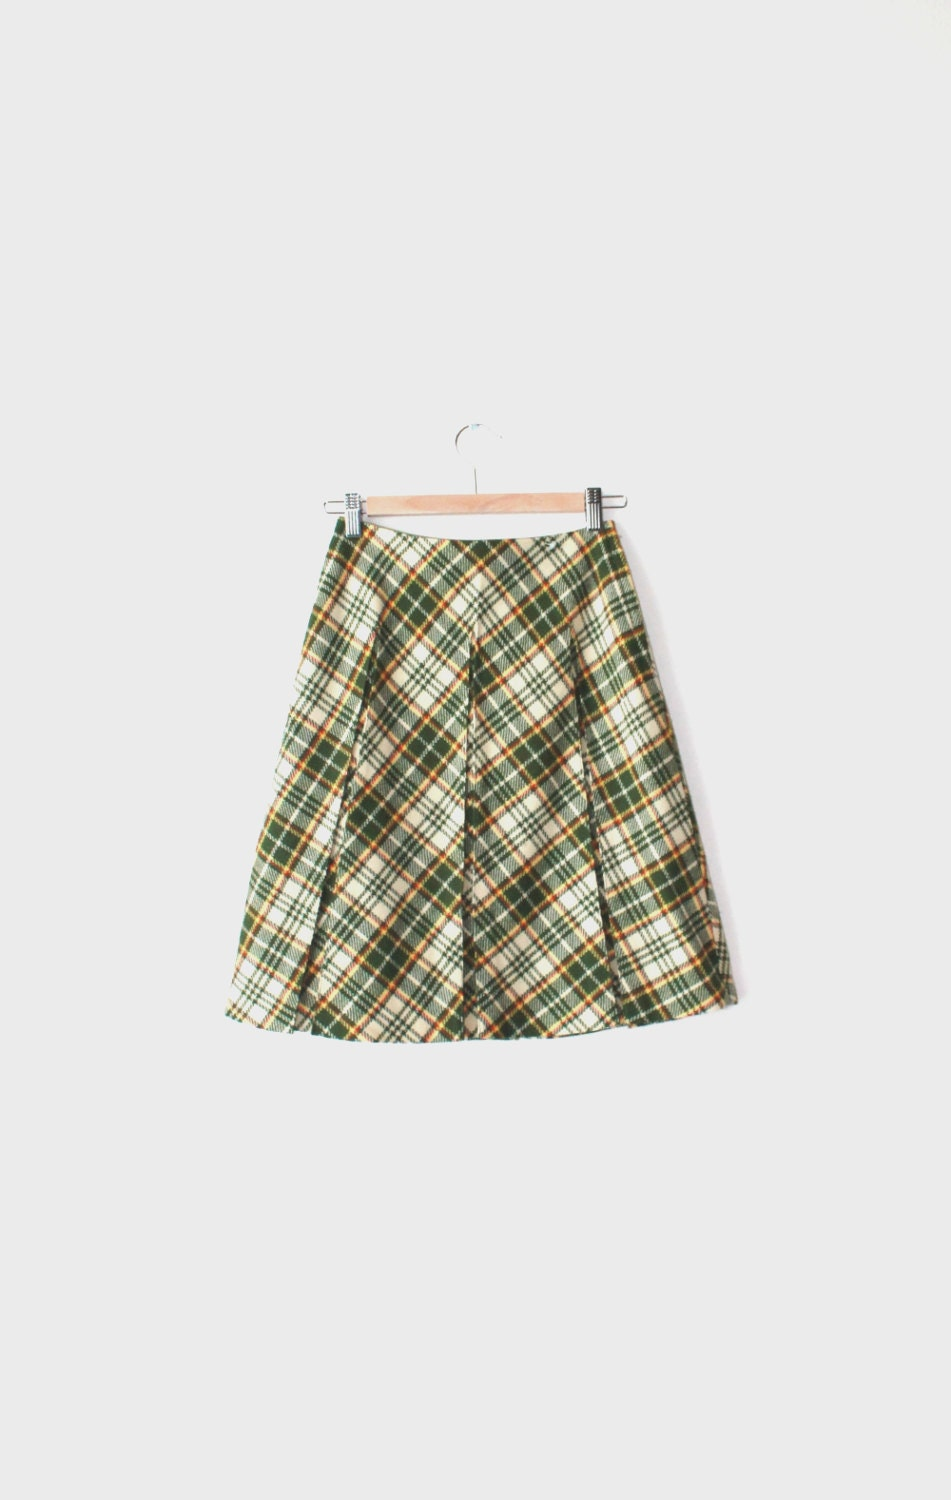 1970s moss green plaid pleated skirt size by